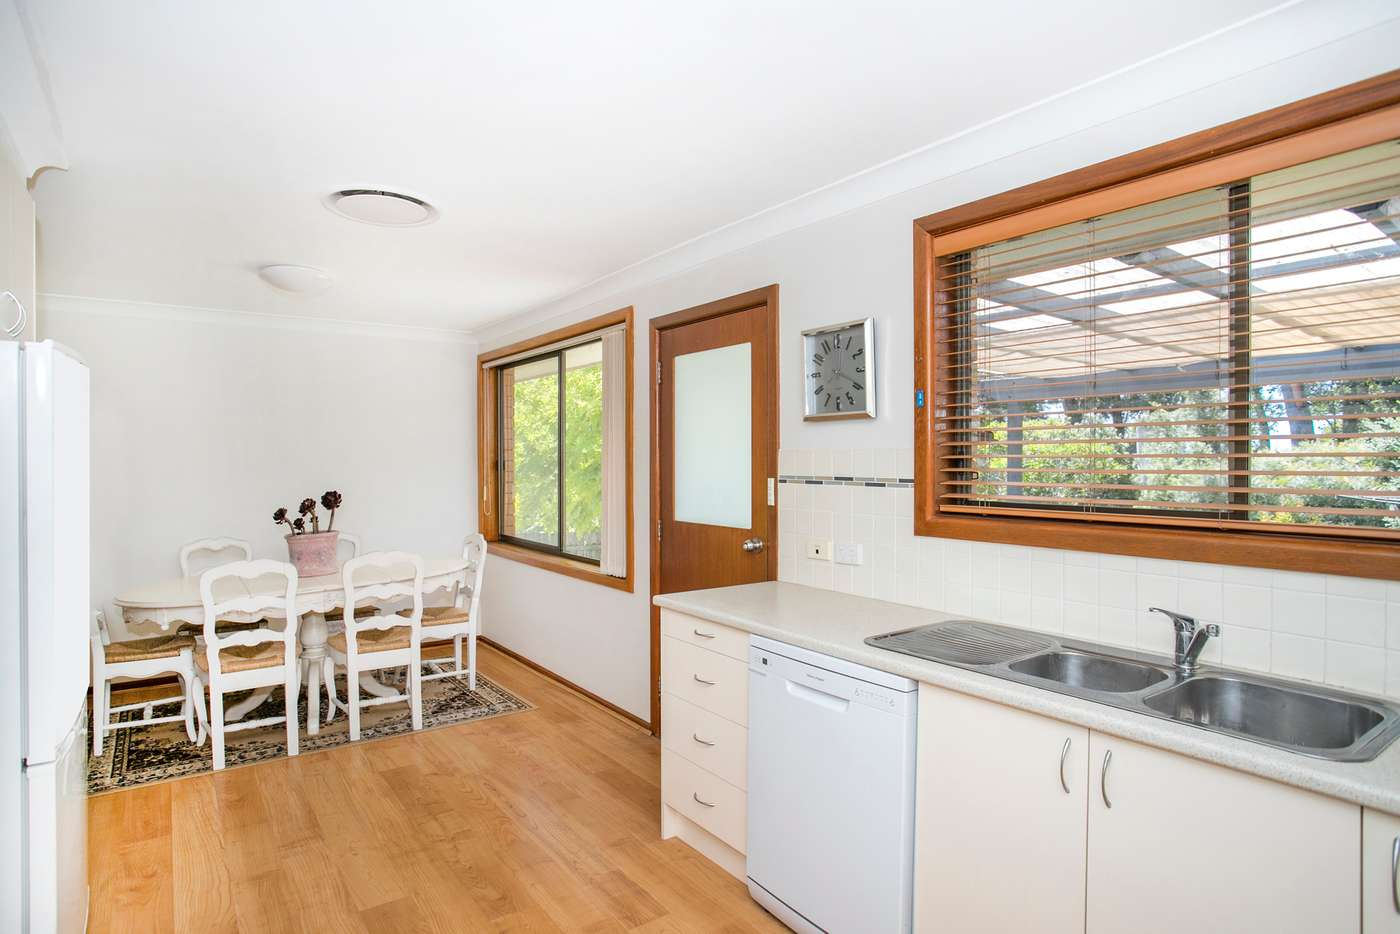 Sixth view of Homely house listing, 146 Camden Street, Ulladulla NSW 2539